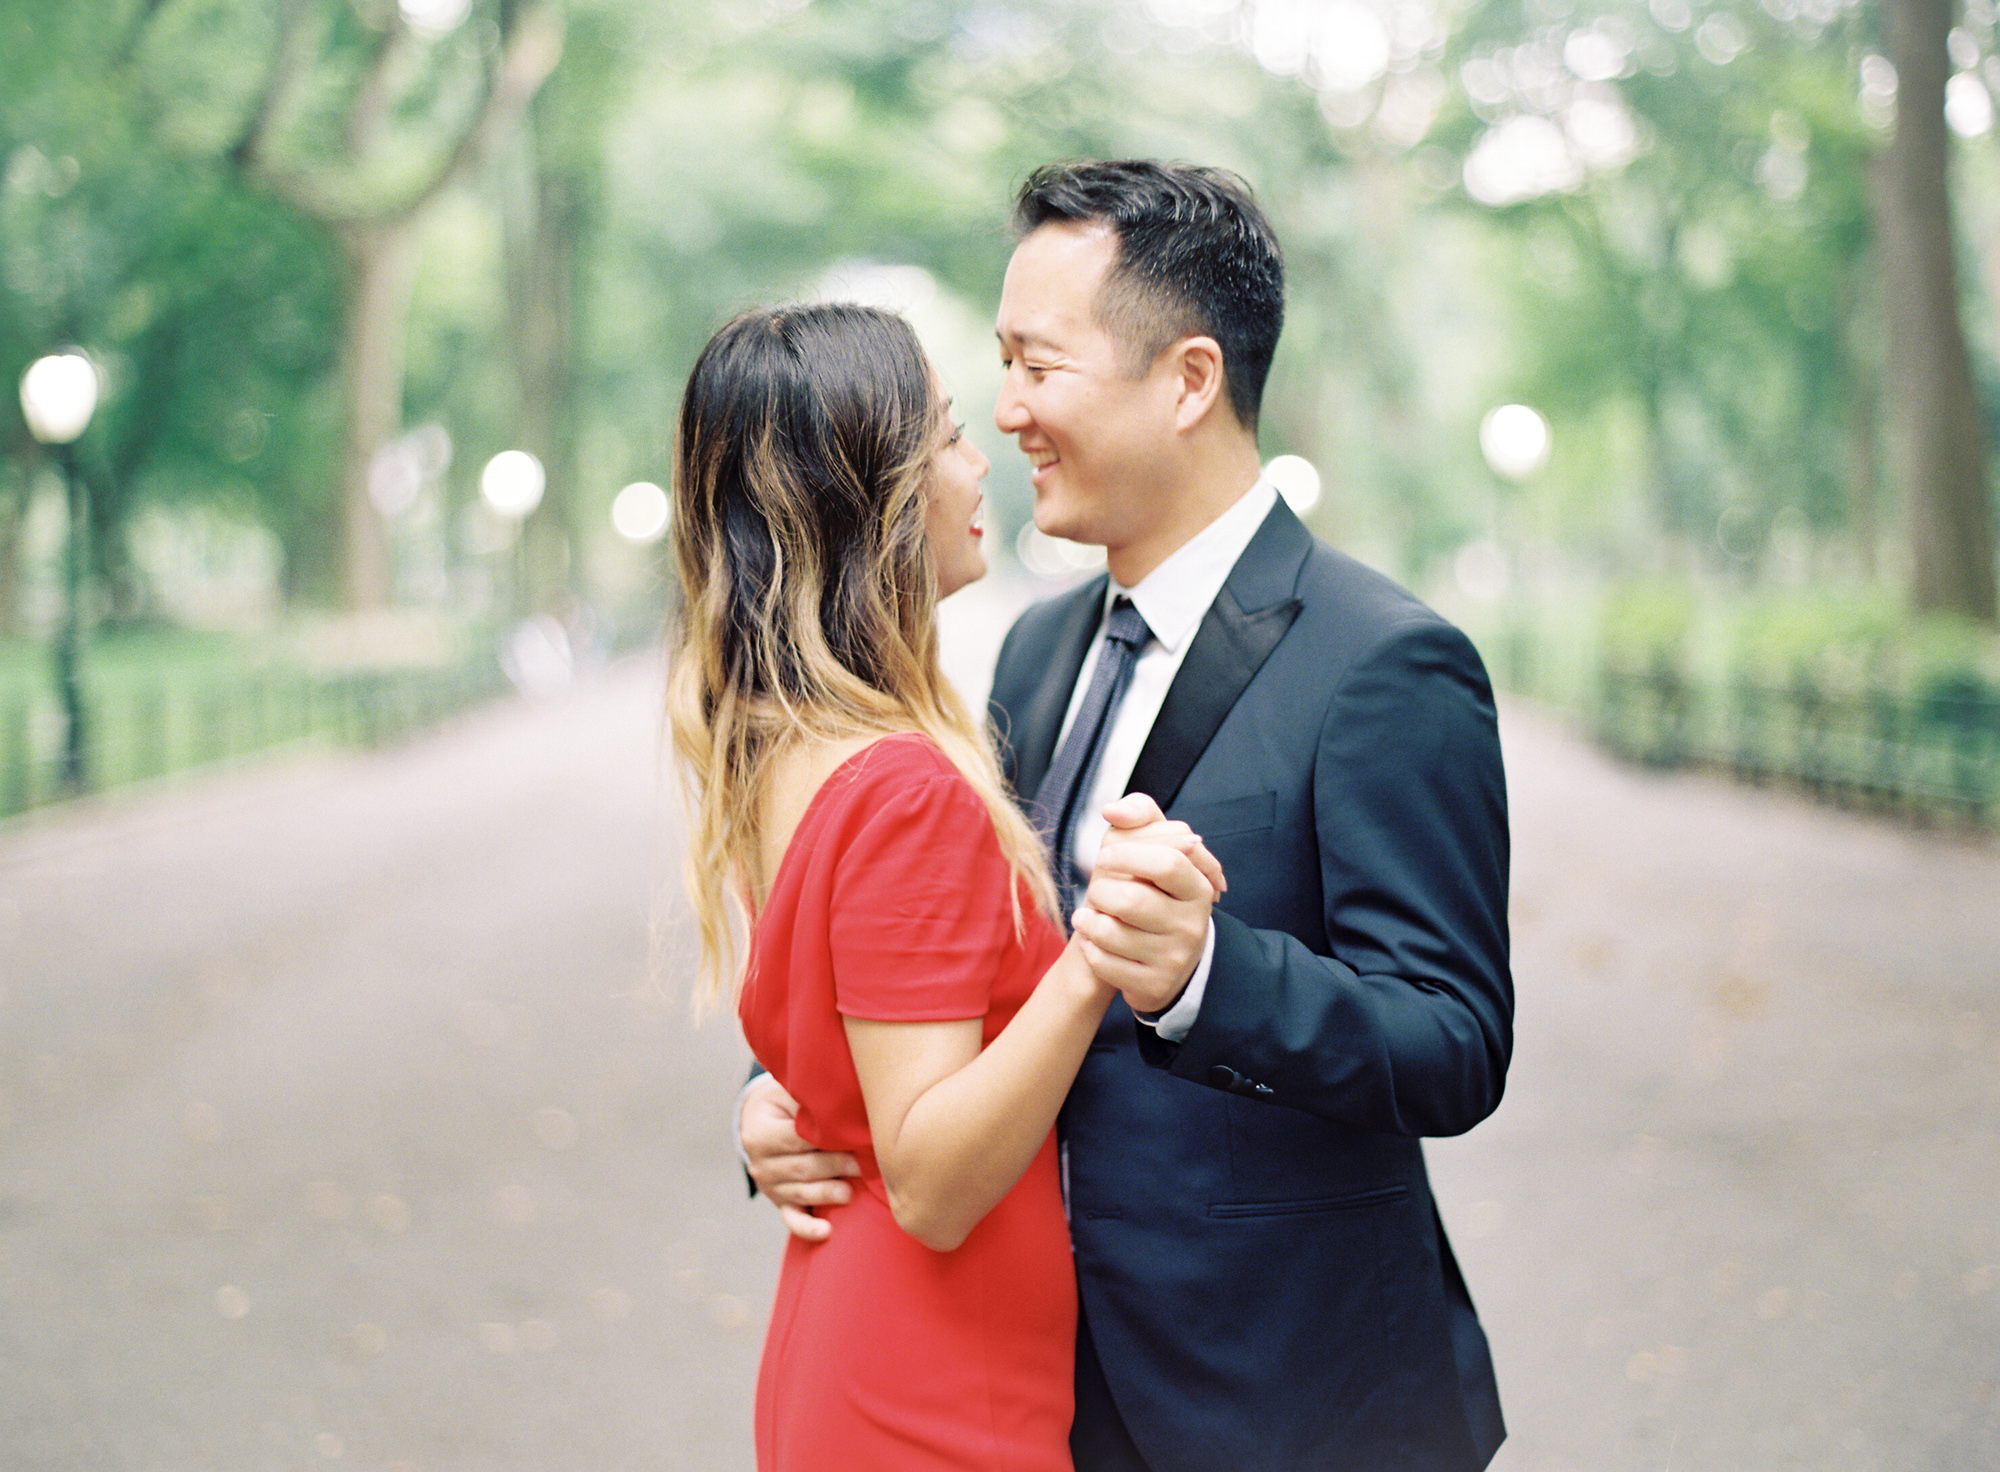 New-York-Film-Engagement-Session-Brooklyn-Bridge-Central-Park-14.jpg